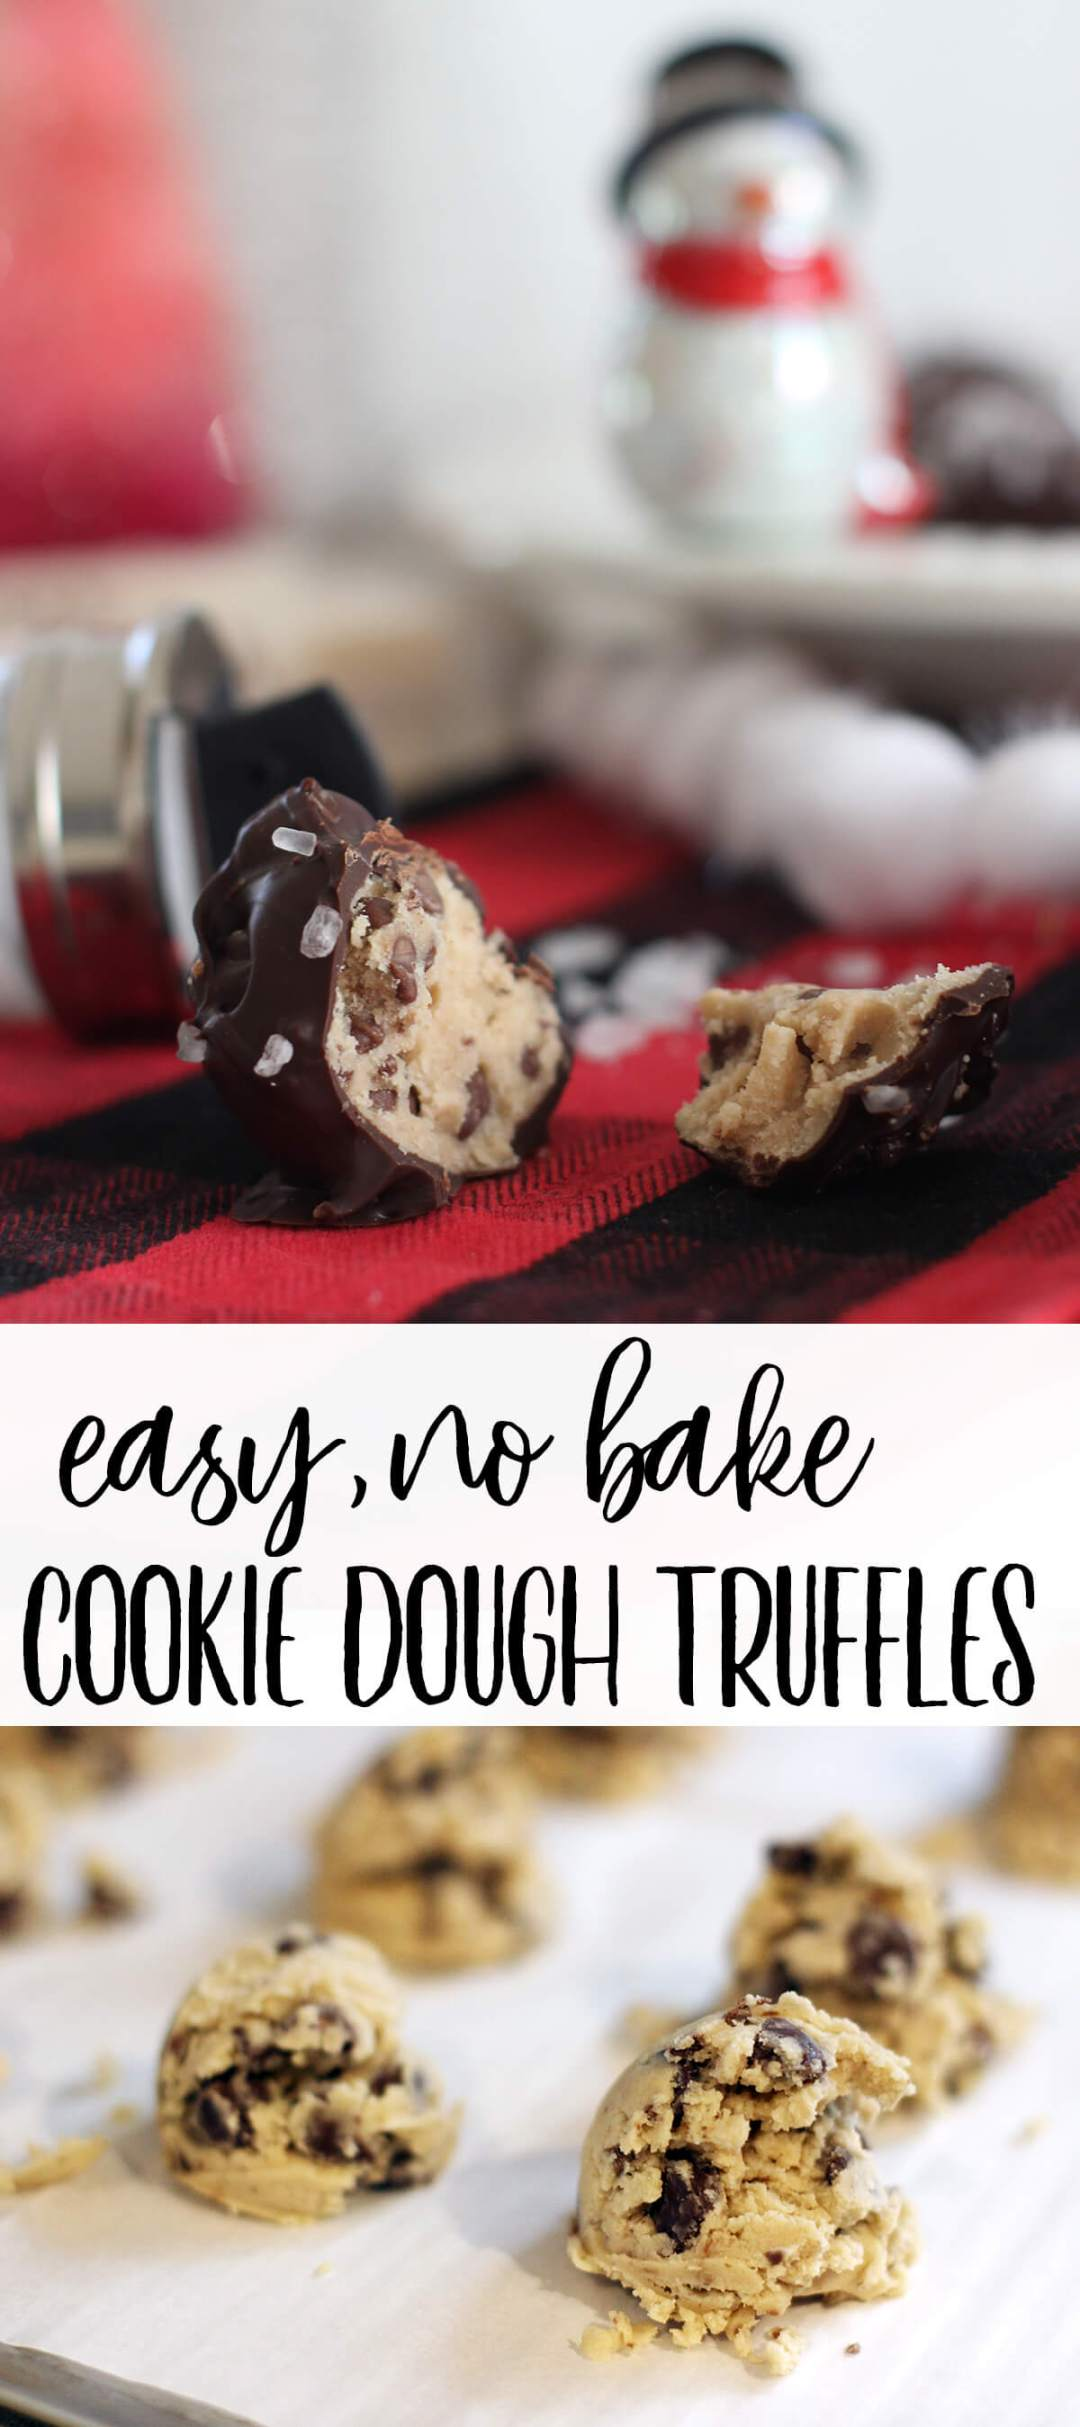 Easy, No Bake, Chocolate Chip Cookie Dough Truffles